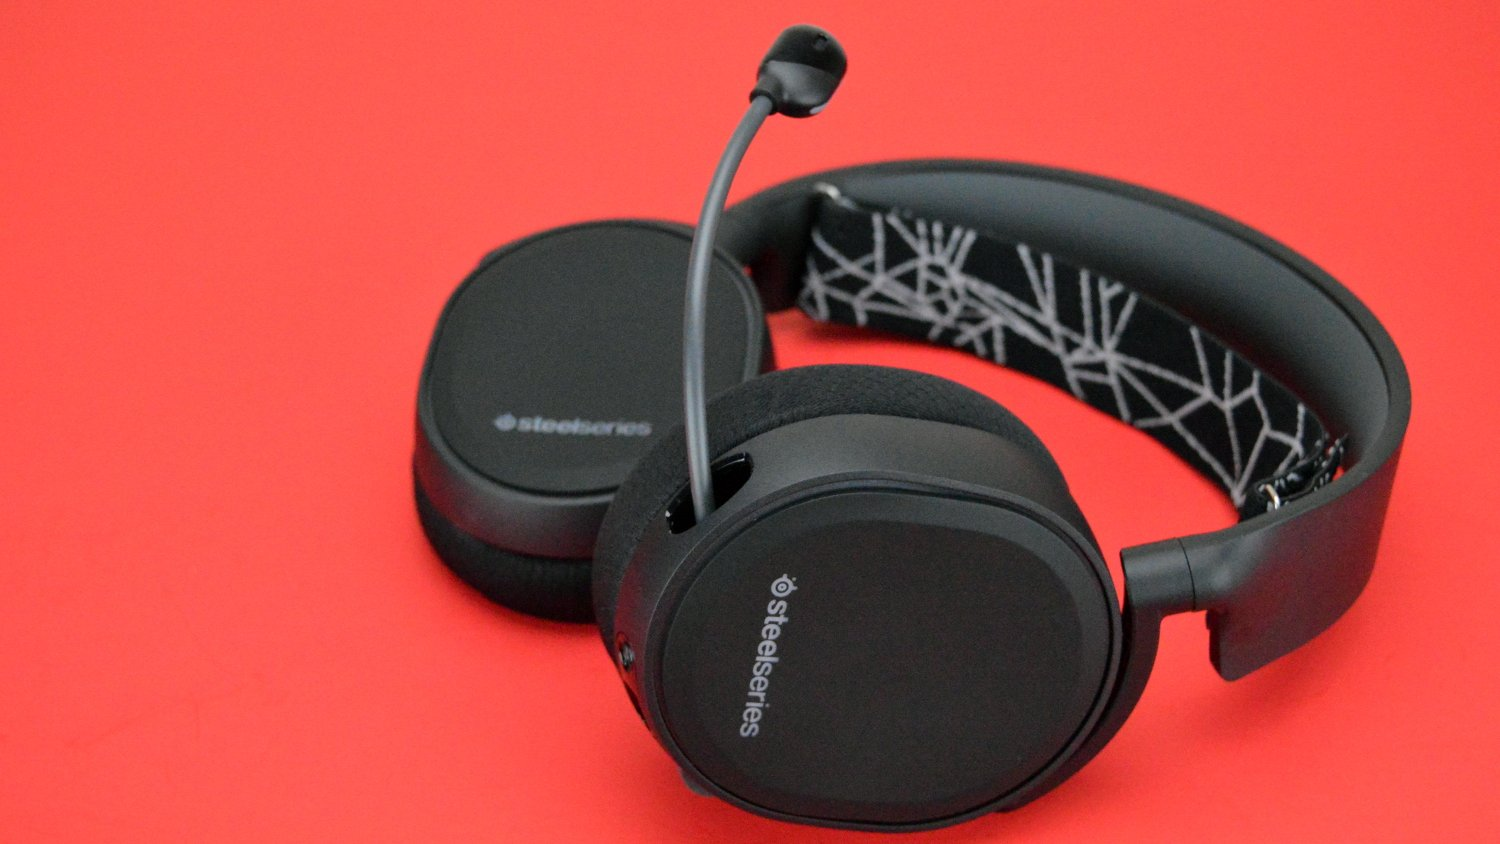 SteelSeries Arctis 5 Gaming Headset Review - Headphone Review